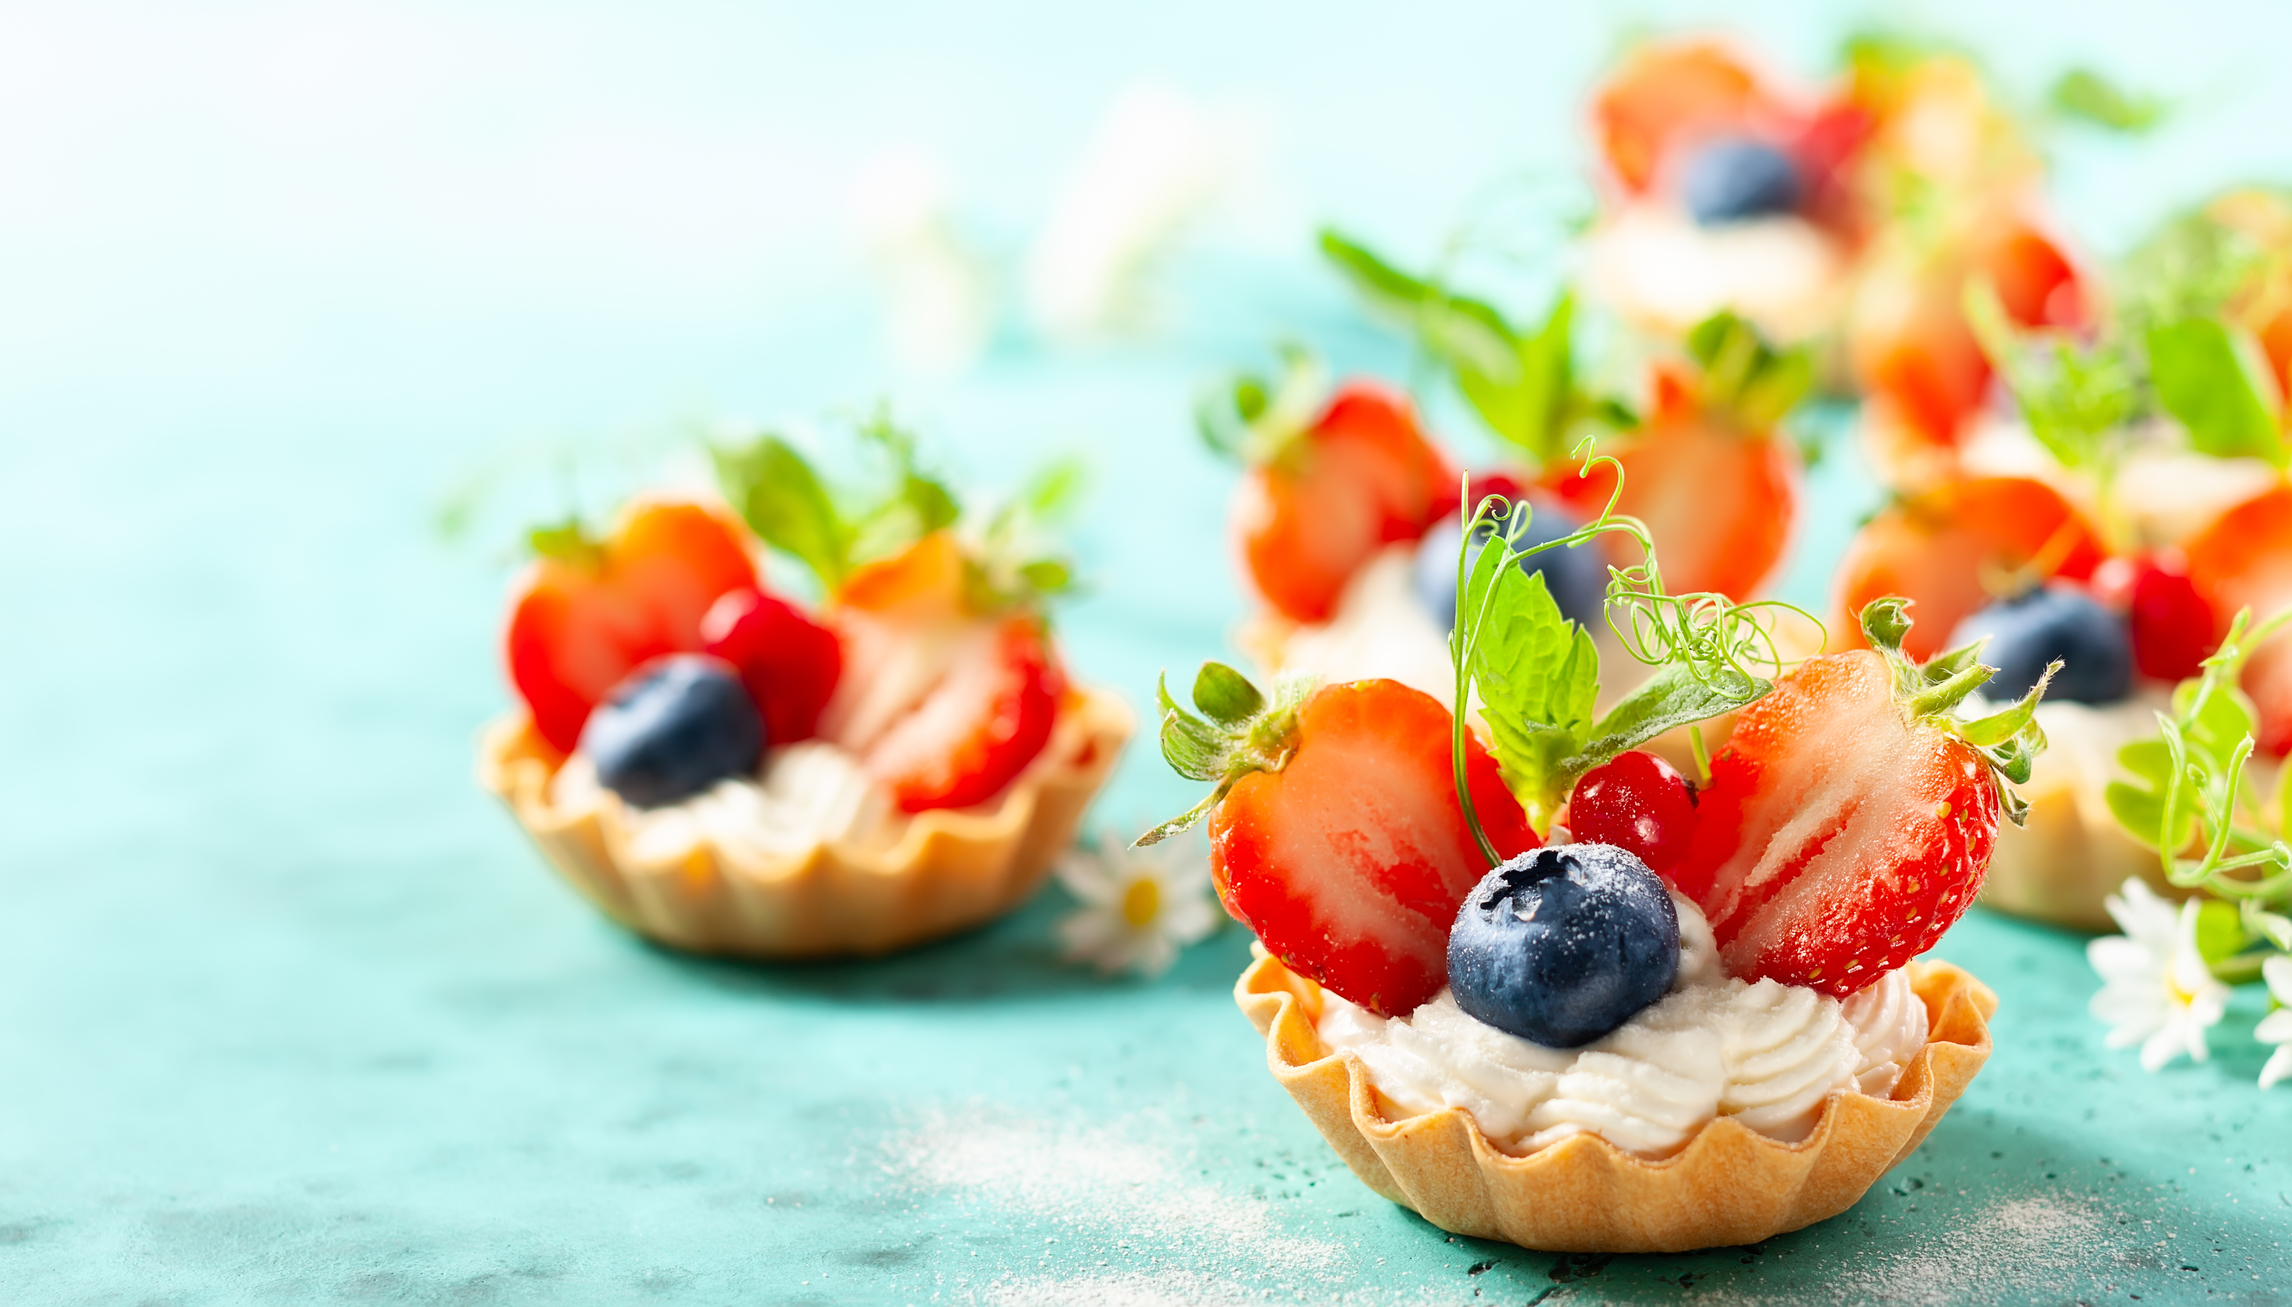 Summer-catering-ideas-hampshire-catering.jpg